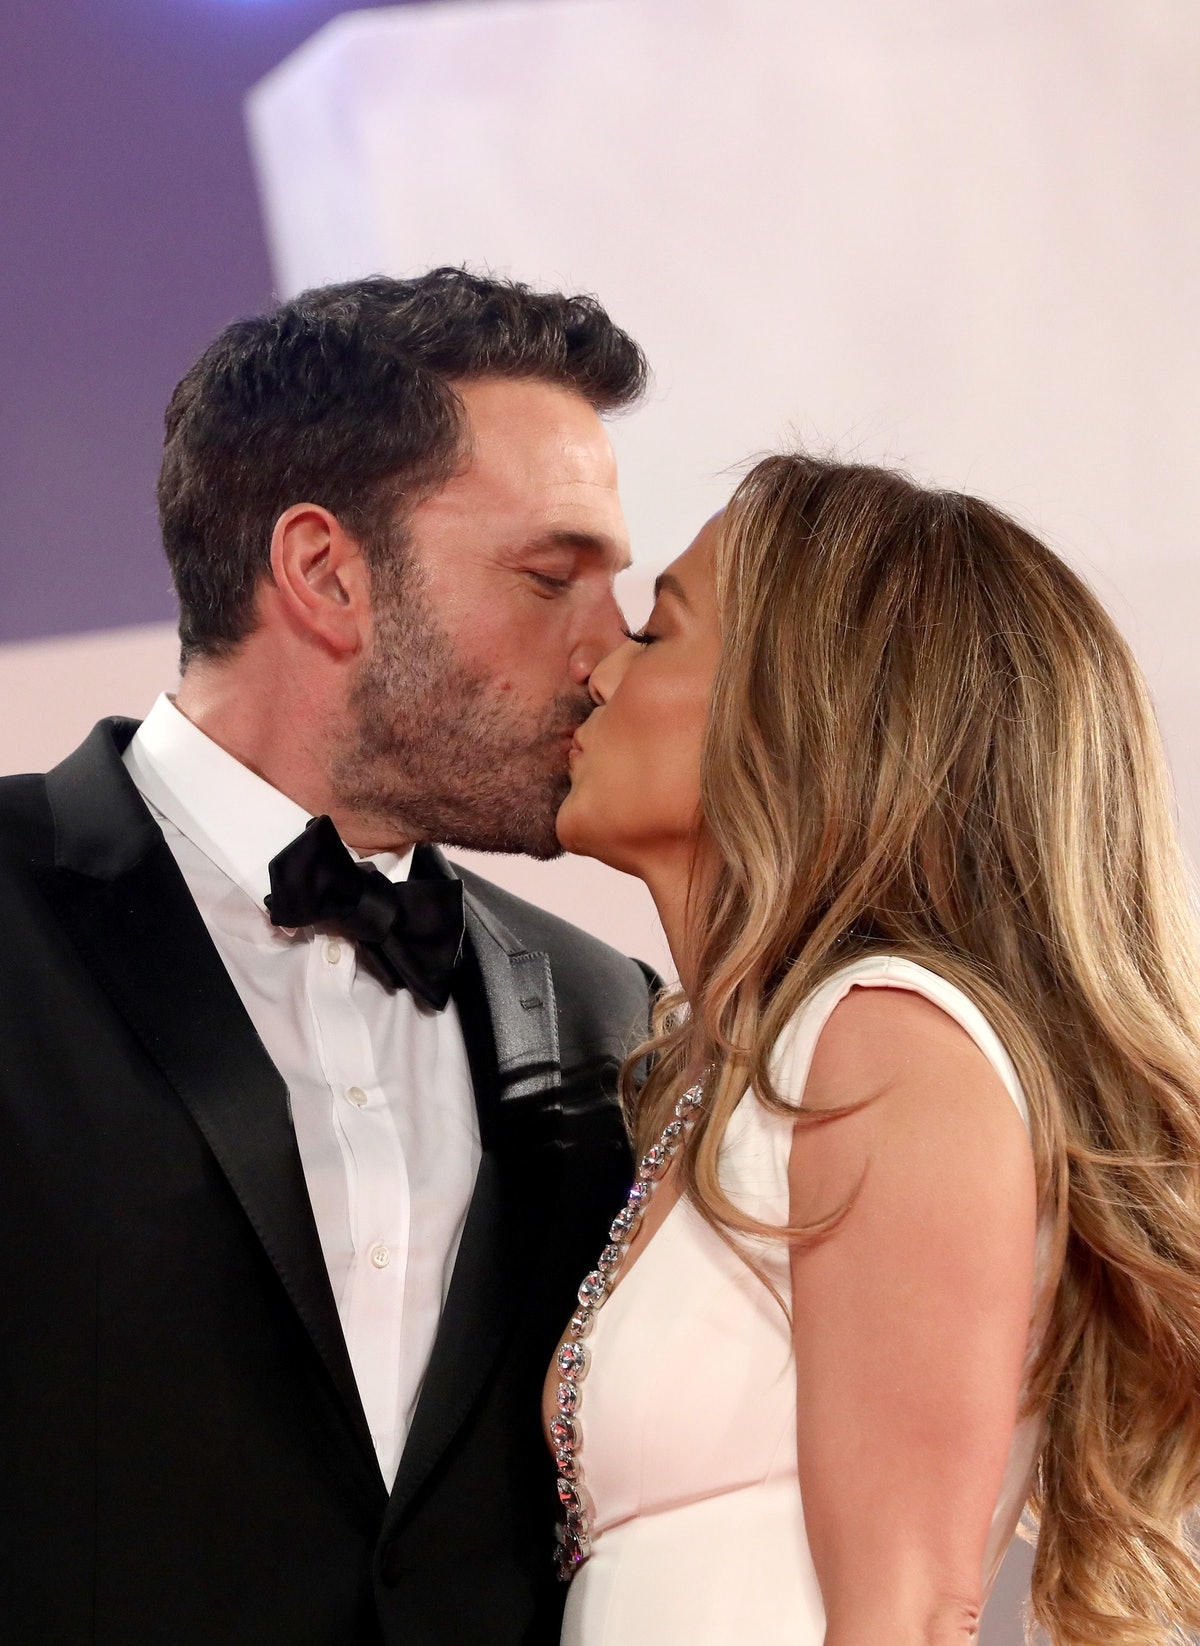 These photos of Ben Affleck and Jennifer Lopez at the red carpet premiere of 'The Last Duel' prove t...